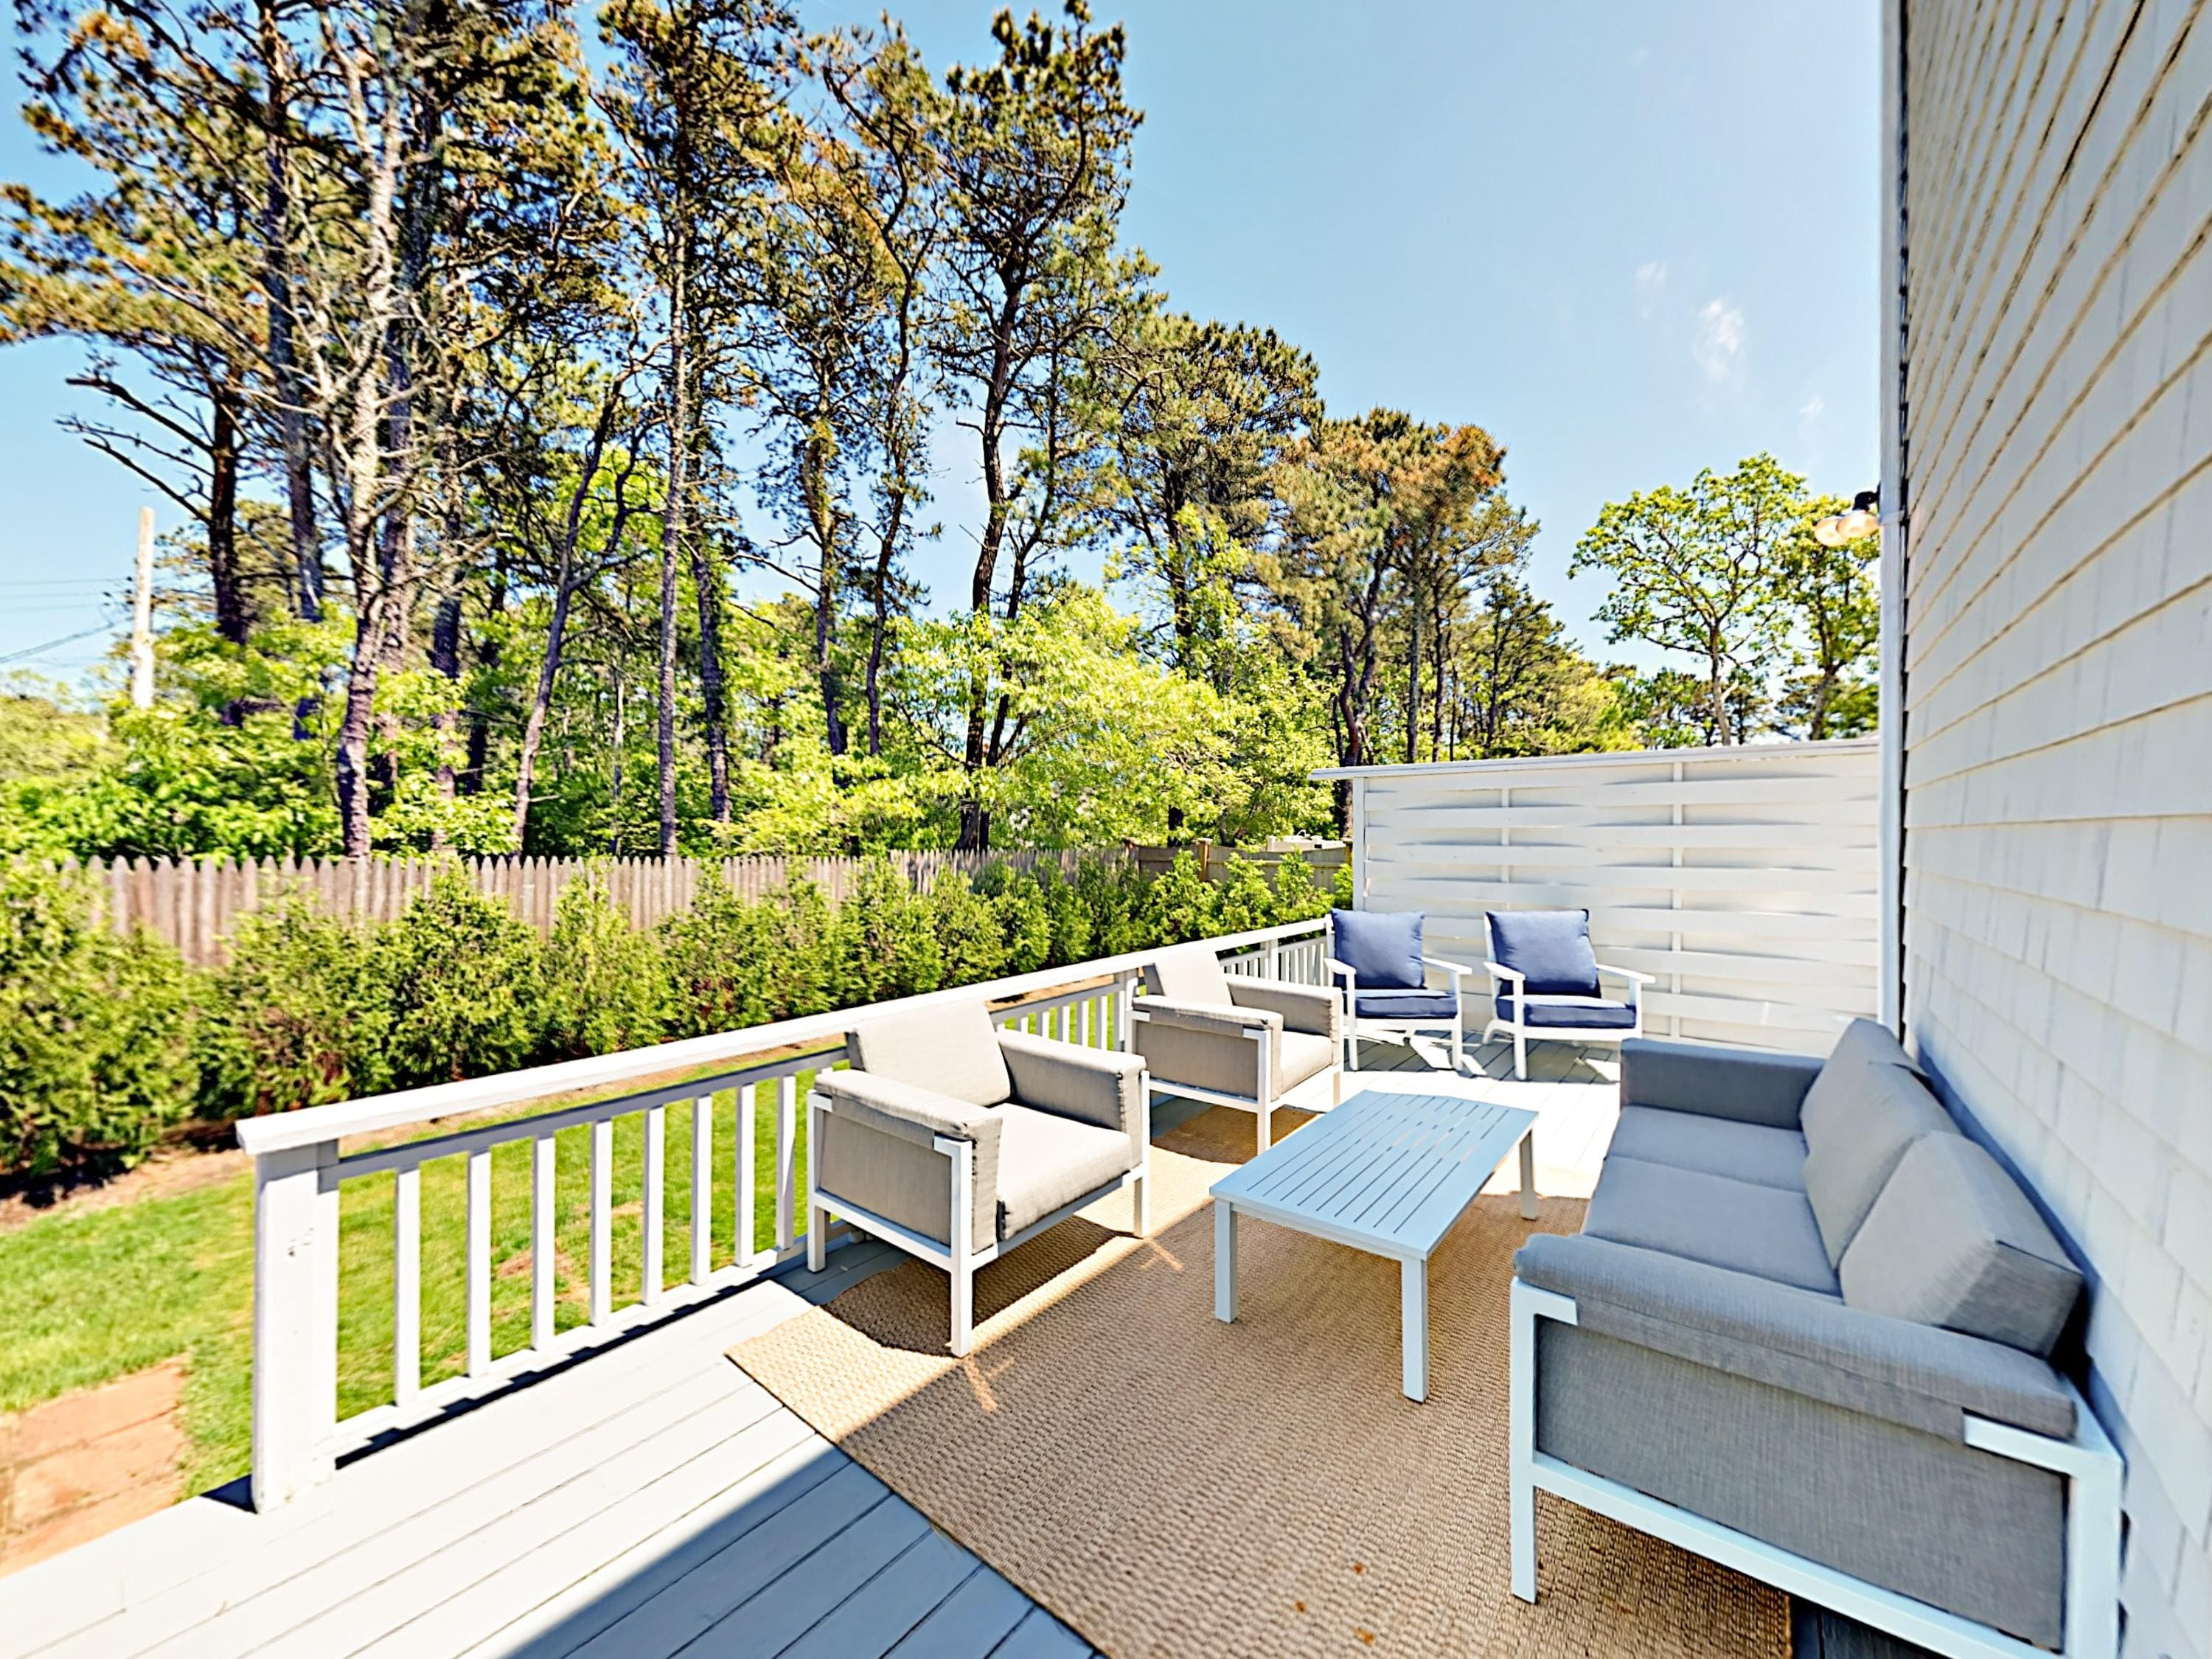 Deck with comfortable seating for 7. This property is professionally maintained and managed by TurnKey Vacation Rentals.